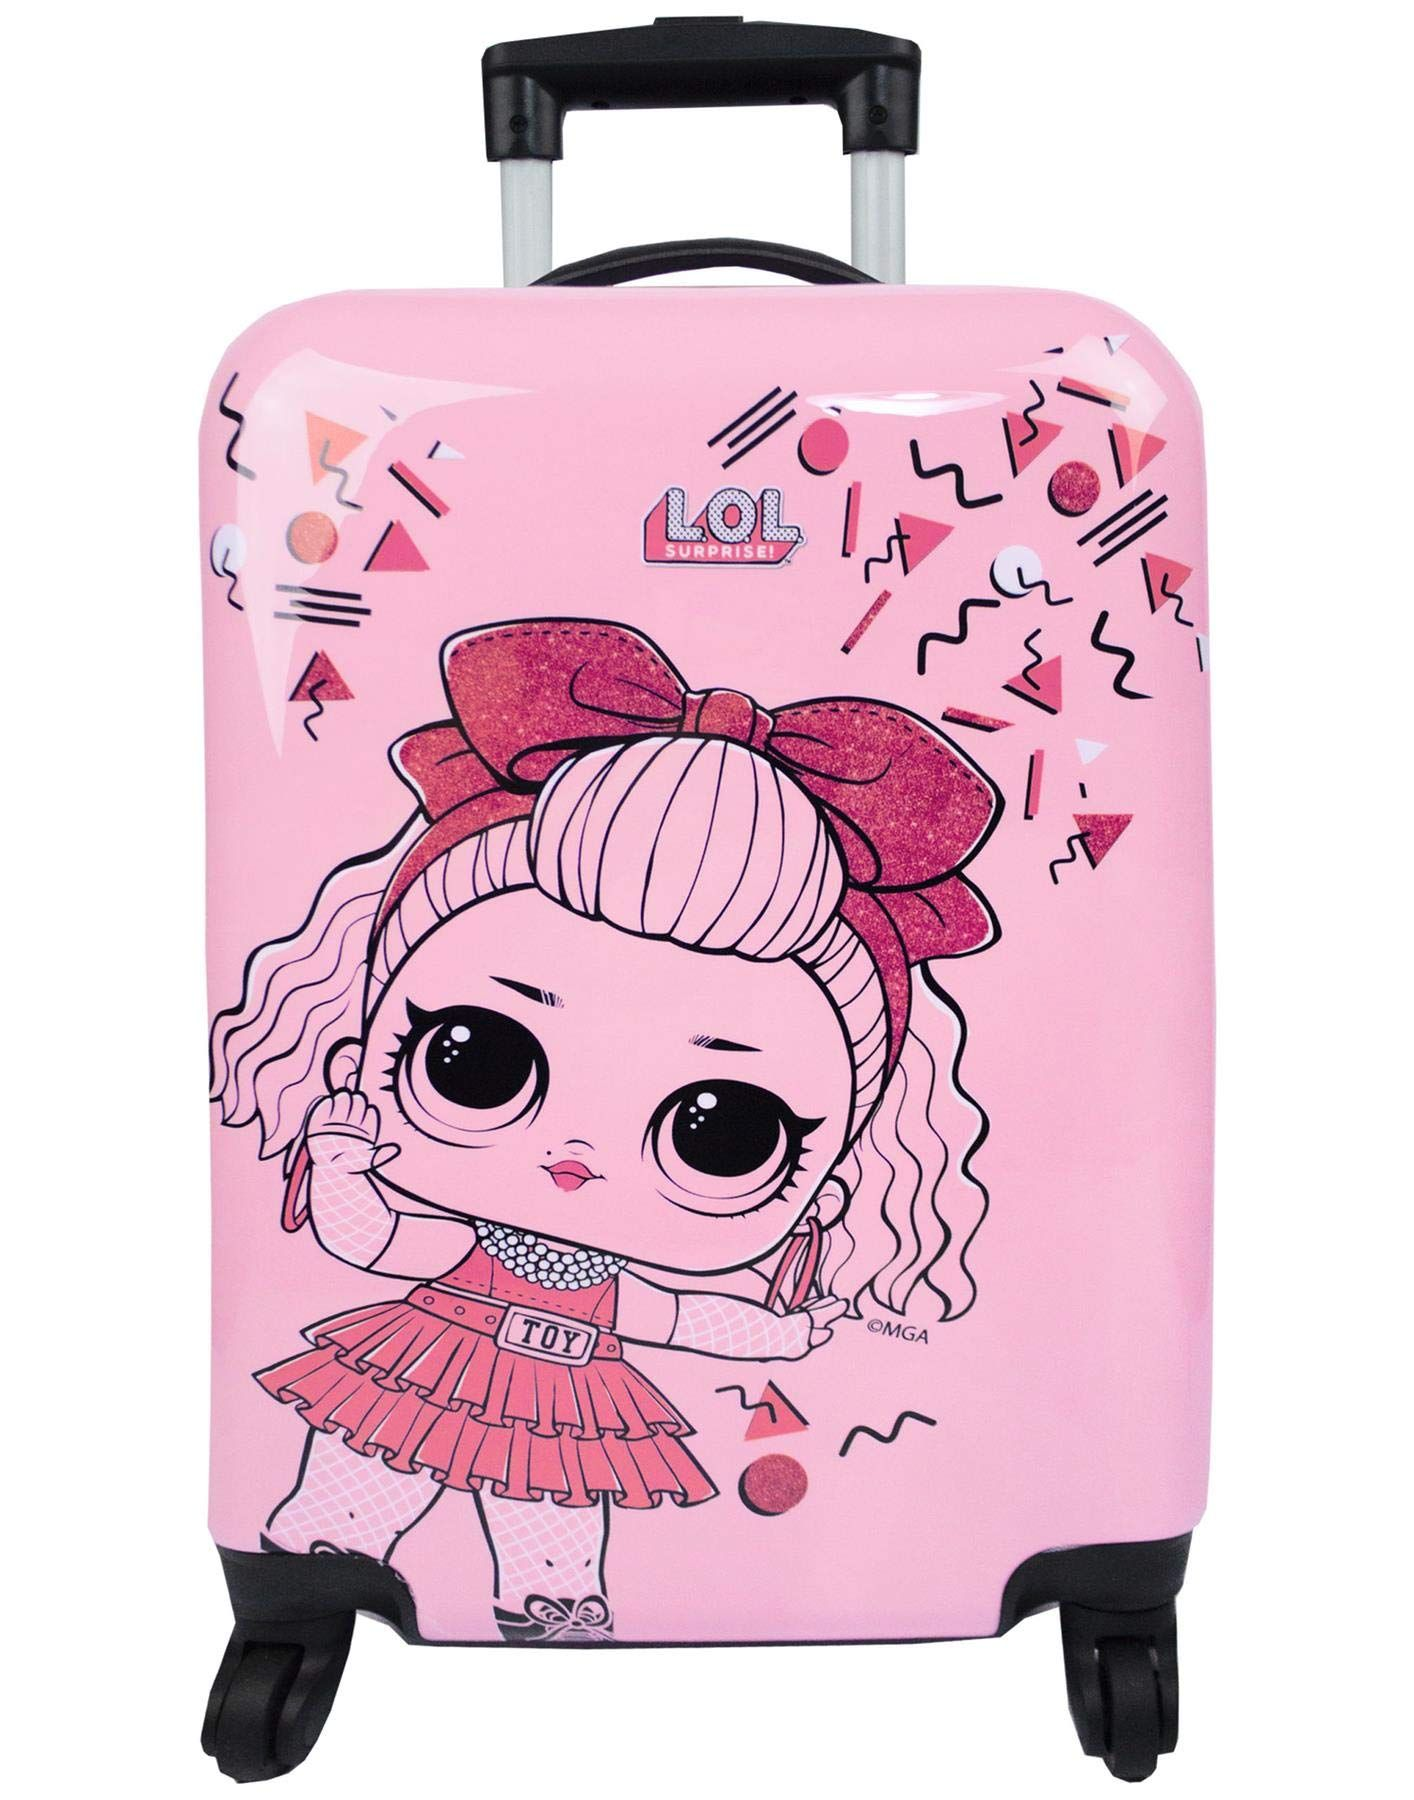 Shop Cute suitcases, Suitcase, Pink girl